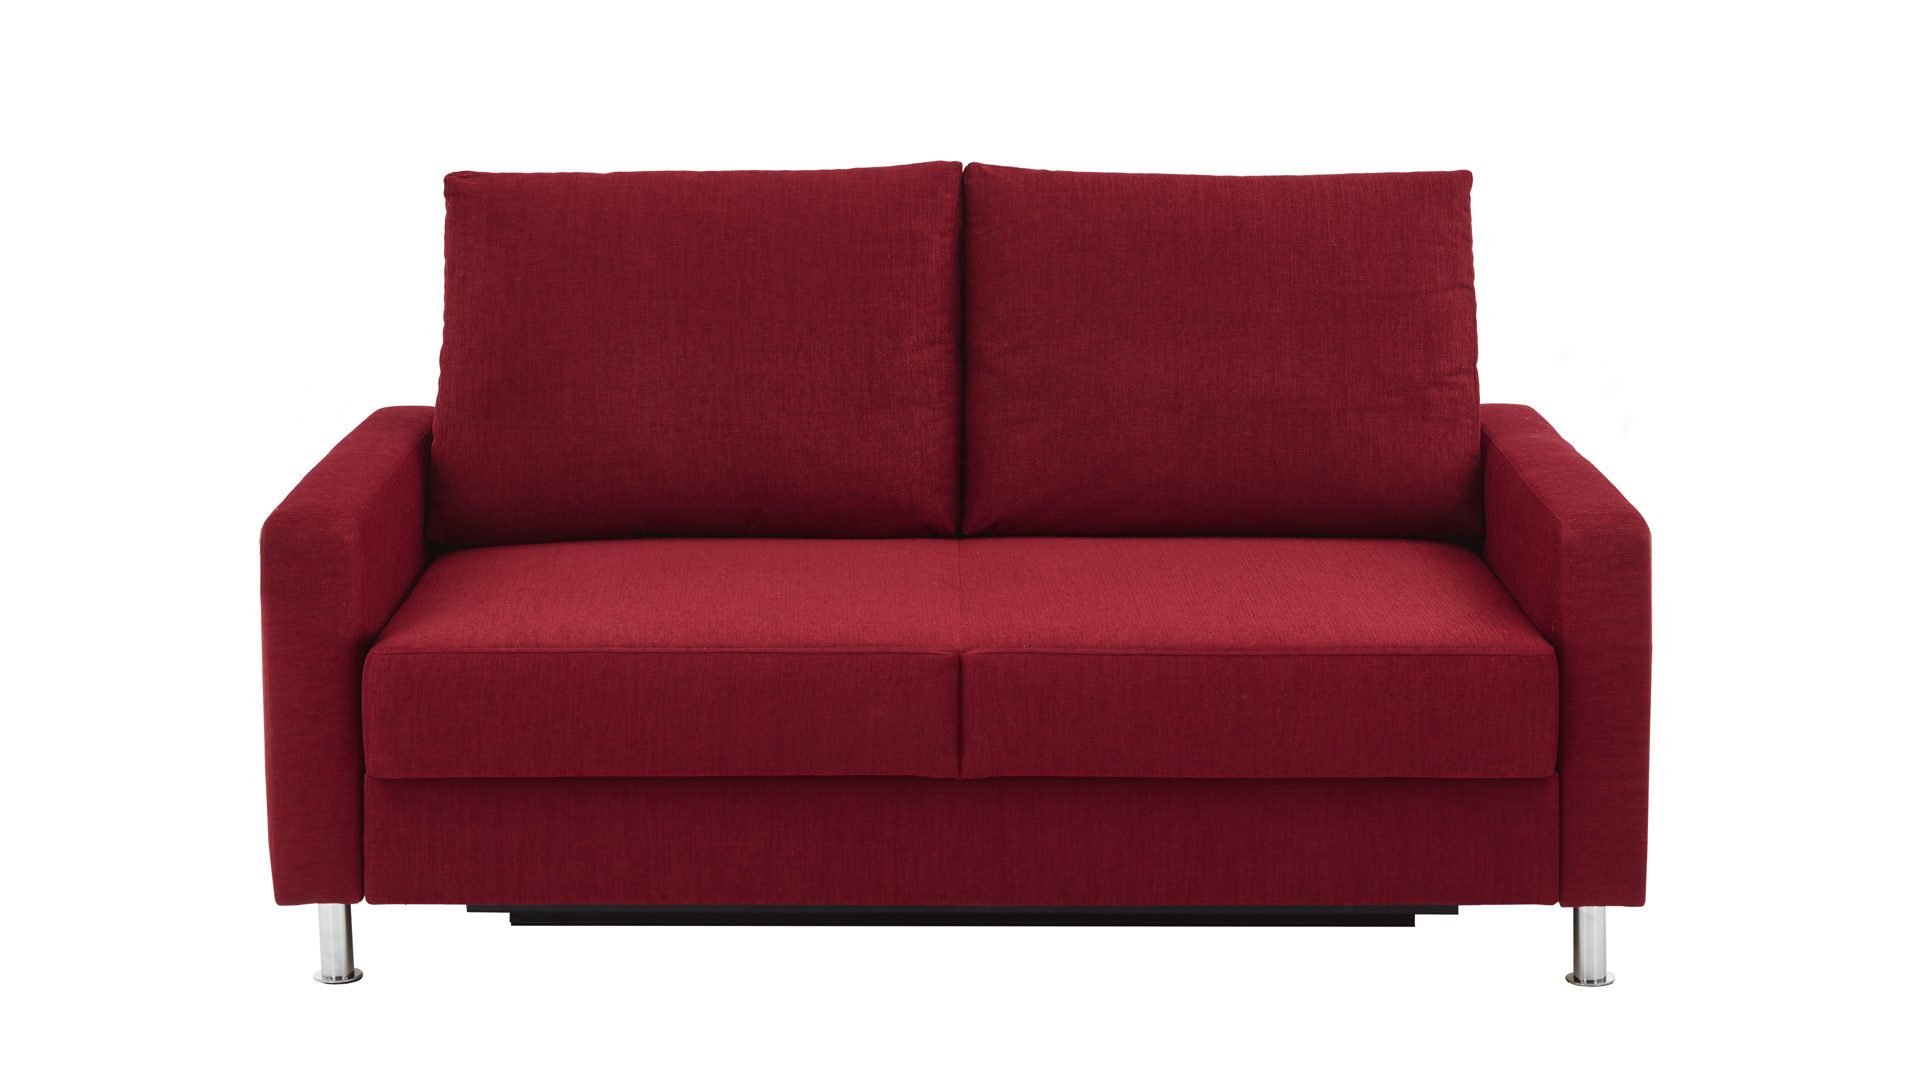 Partnerring Collection Schlafsofa Multi Roter Bezug 8 8014 Breite Ca 166 Lamstedt Cuxhaven Bremerhaven